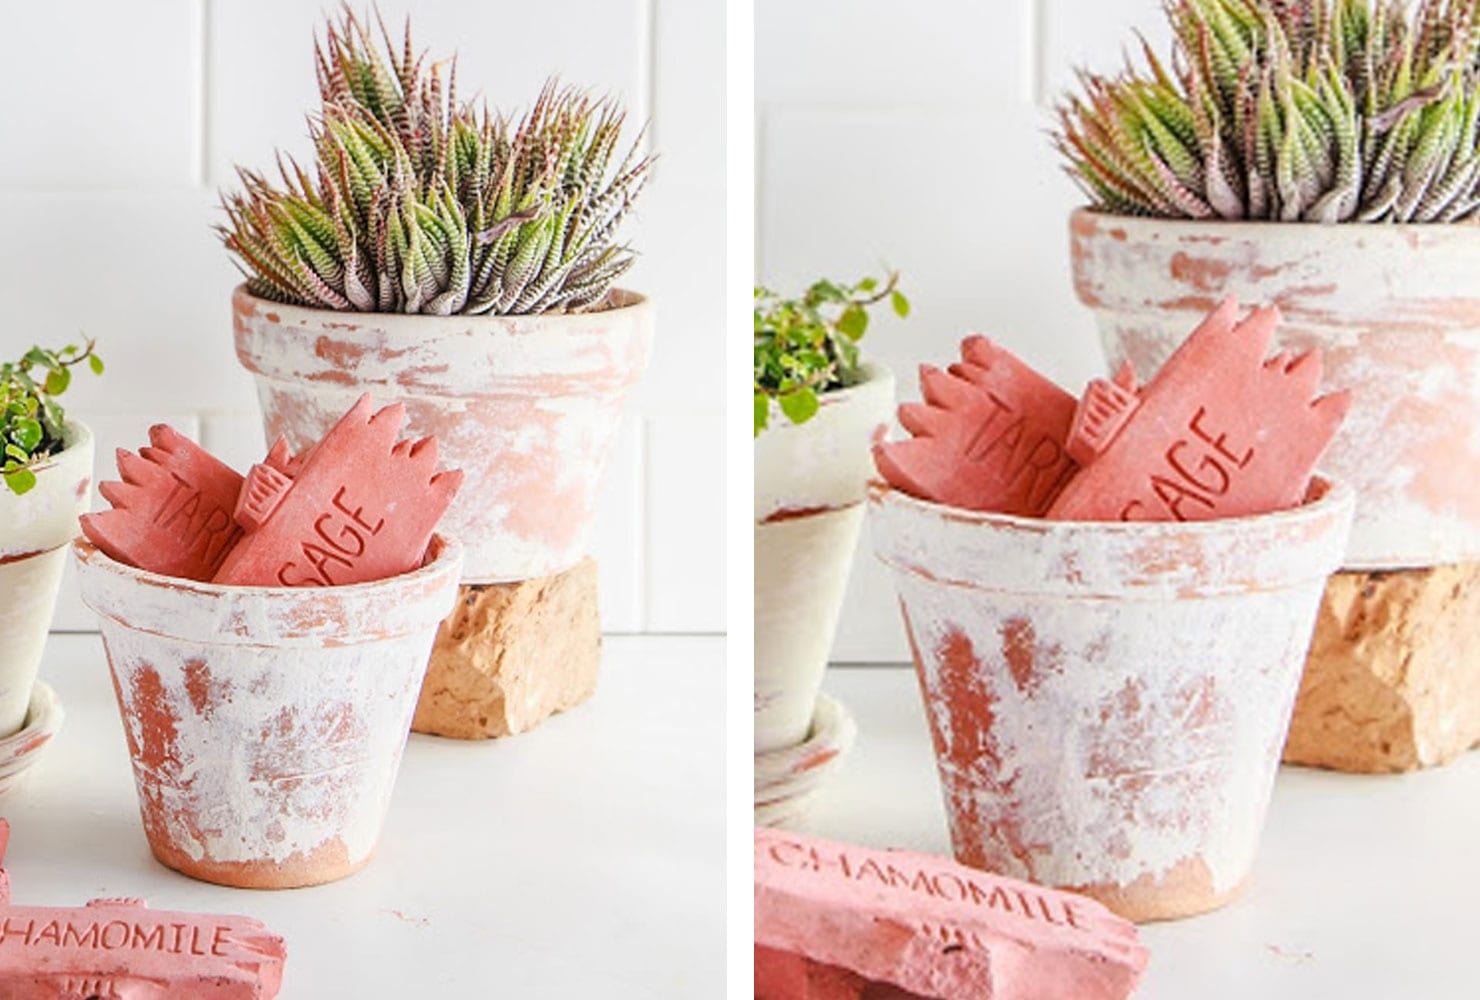 terracotta pots serve as decor